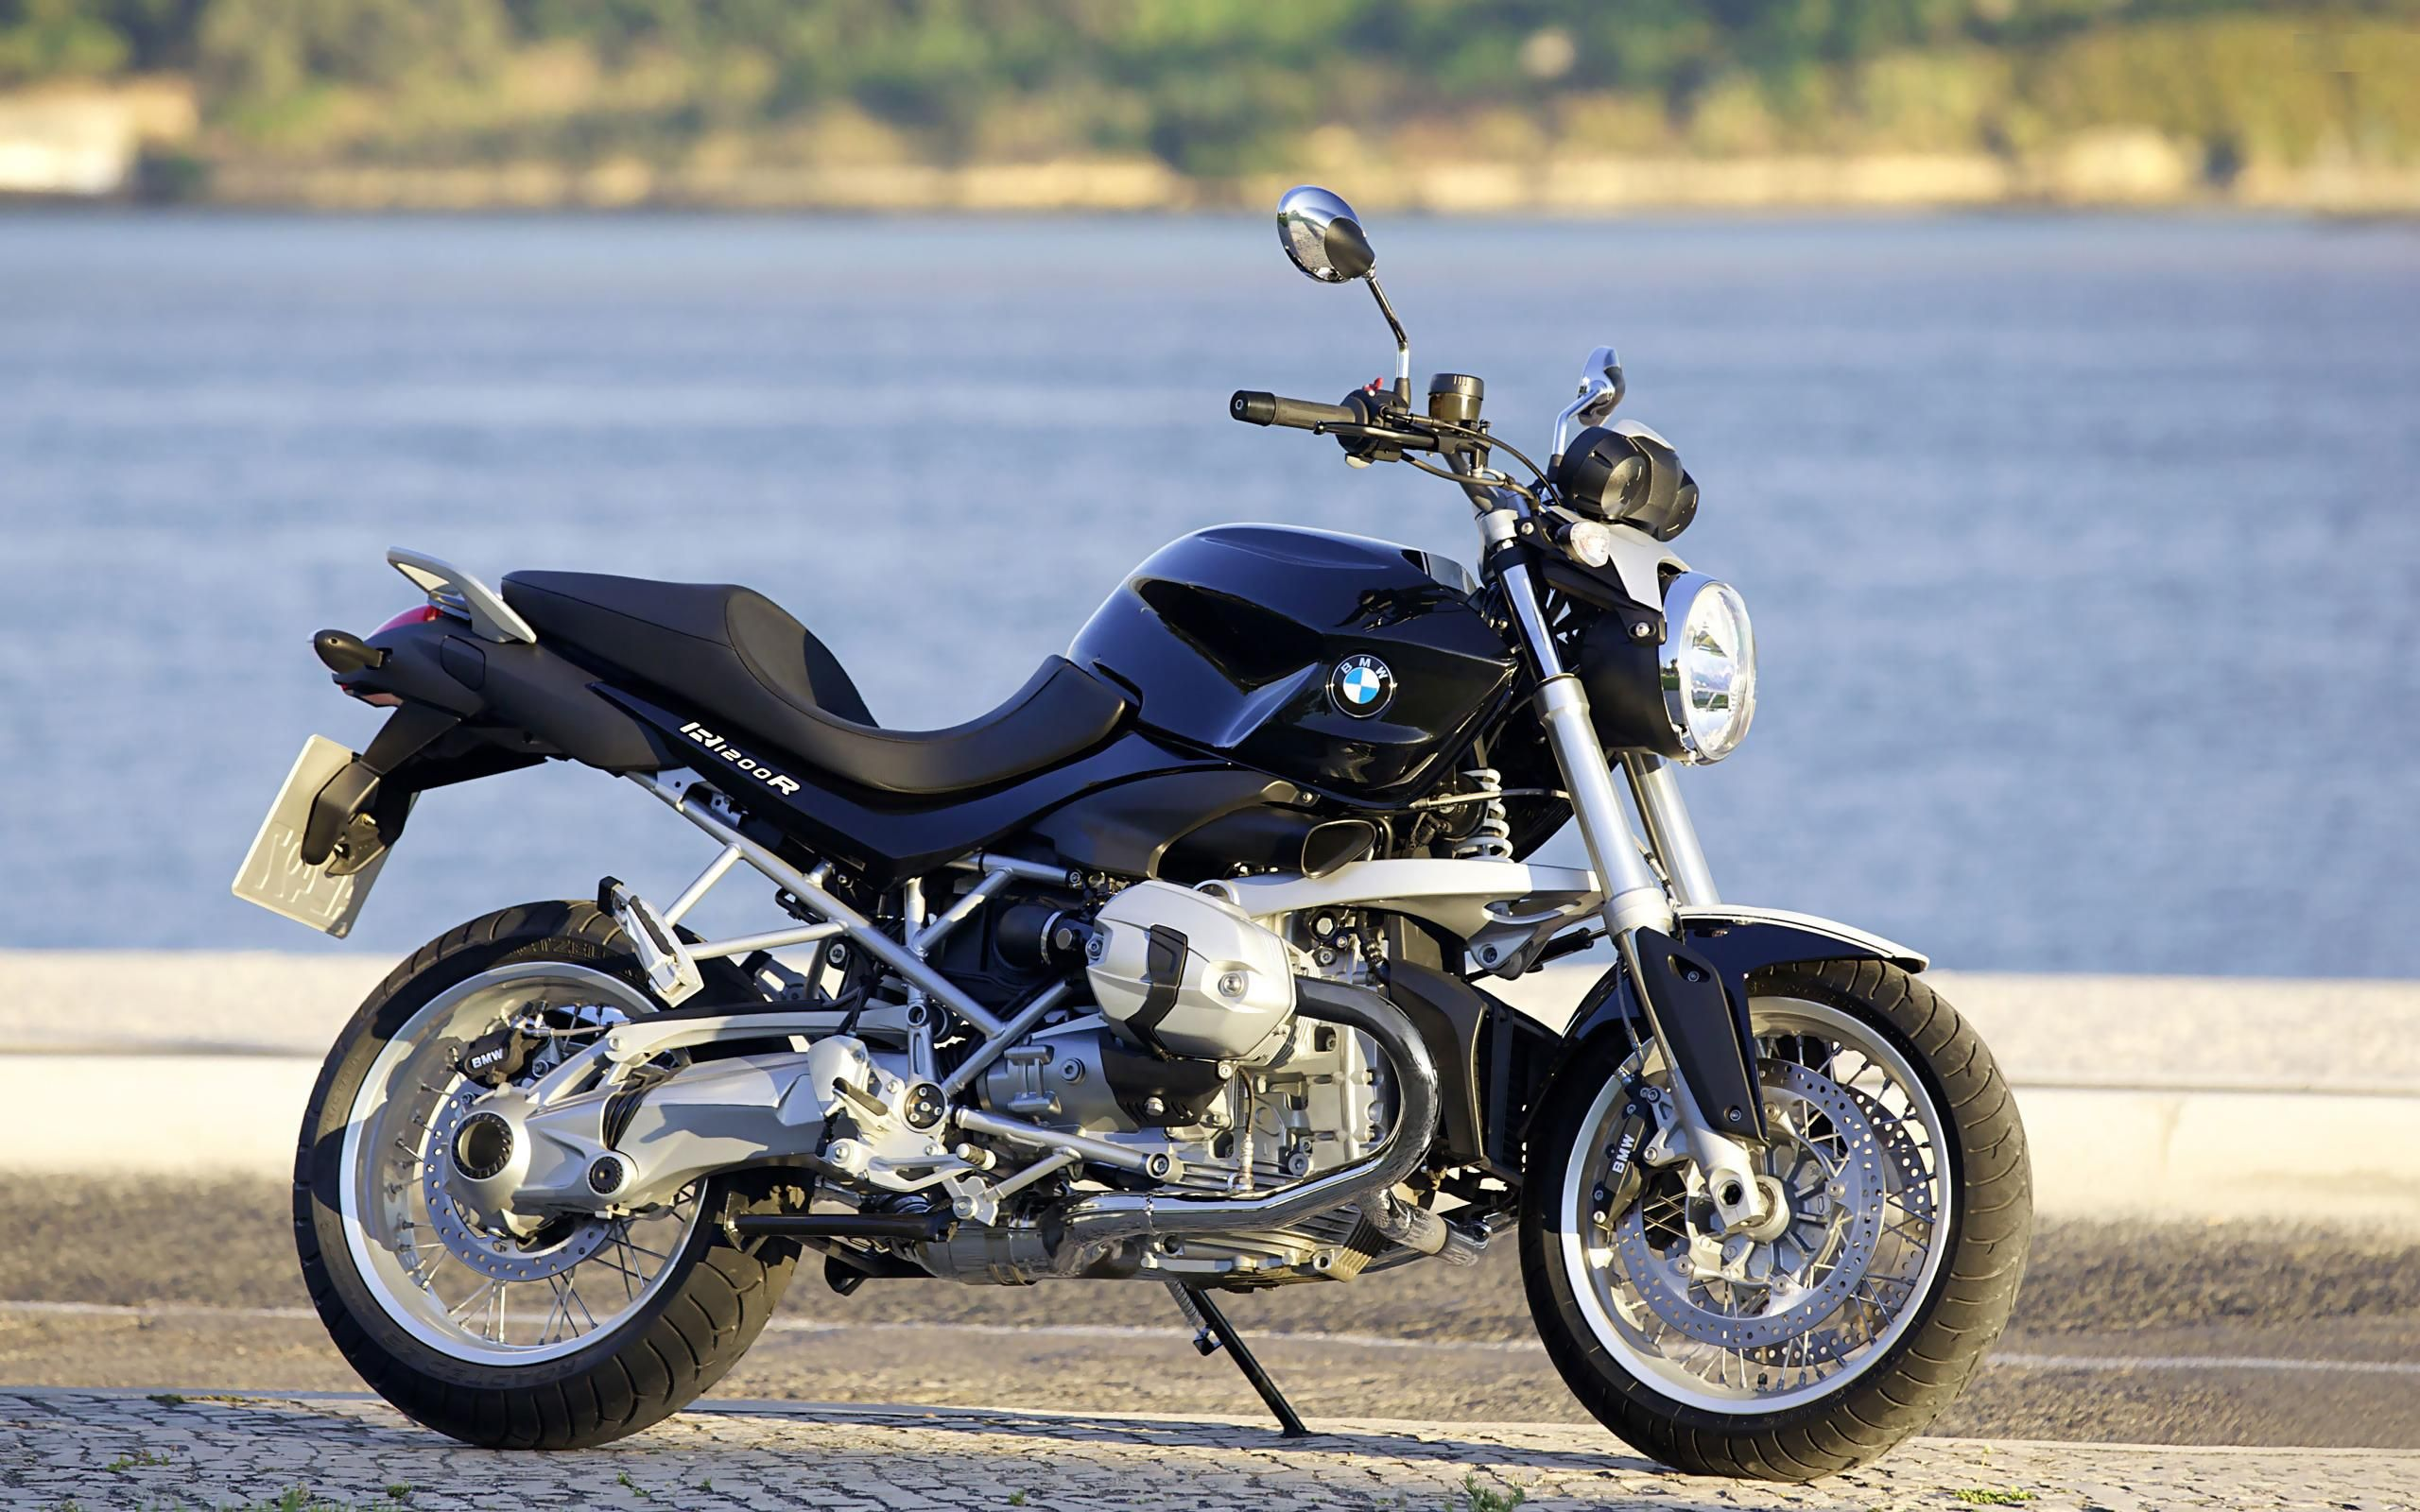 2012 bmw r1200r classic check out these bimmers http